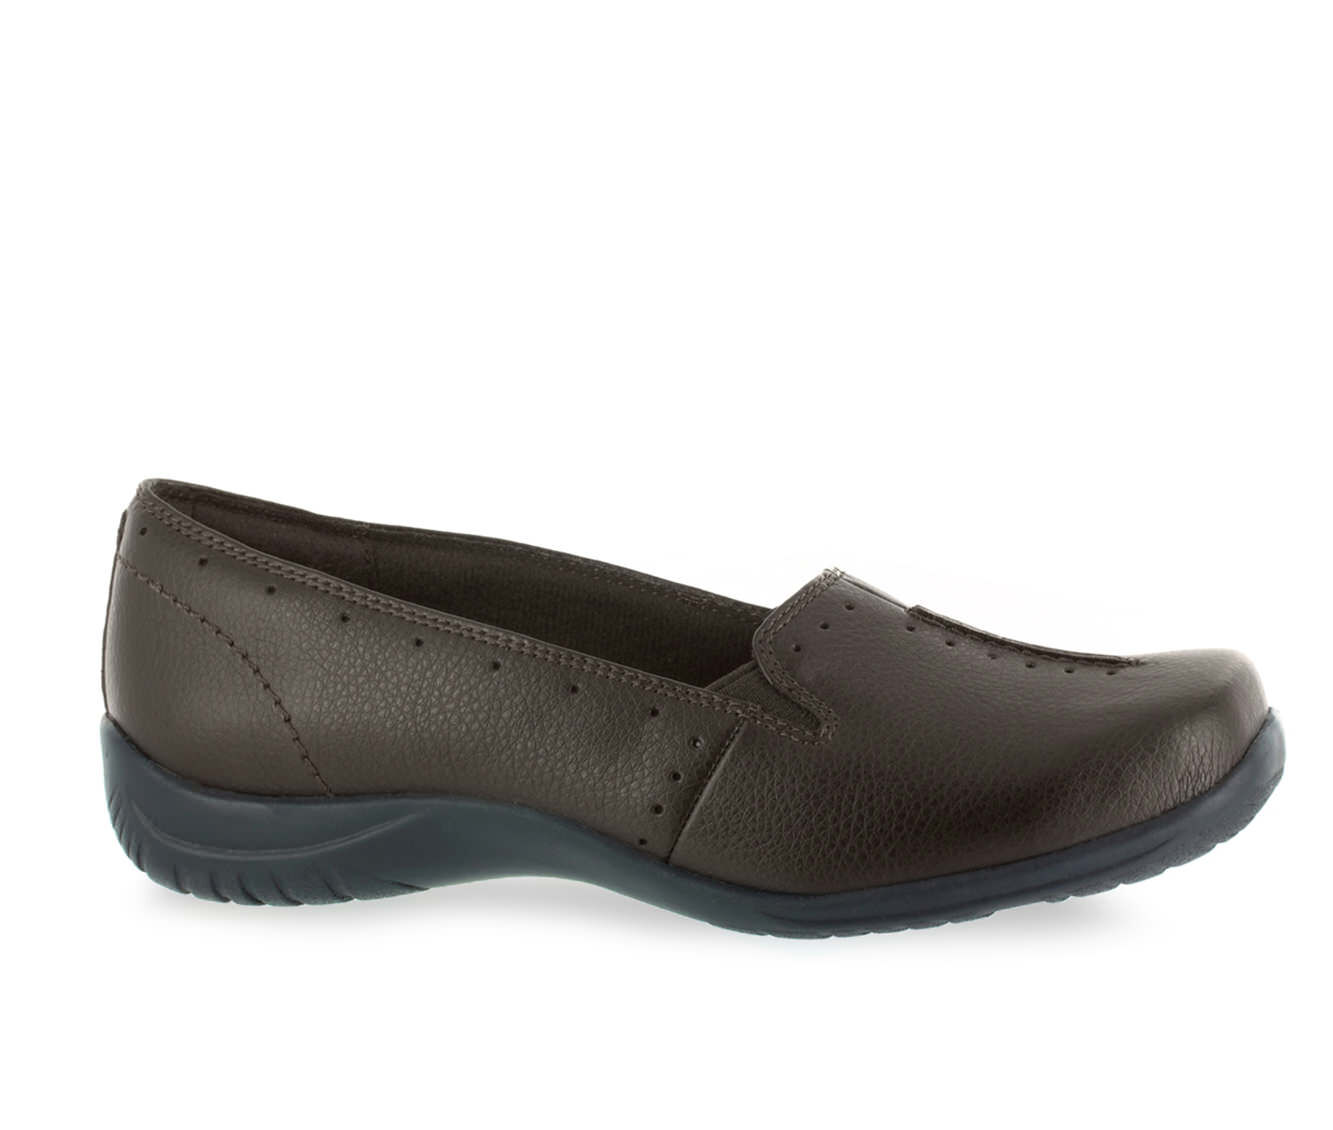 Where To Buy Women's Easy Street Purpose Shoes Brown Tumbled